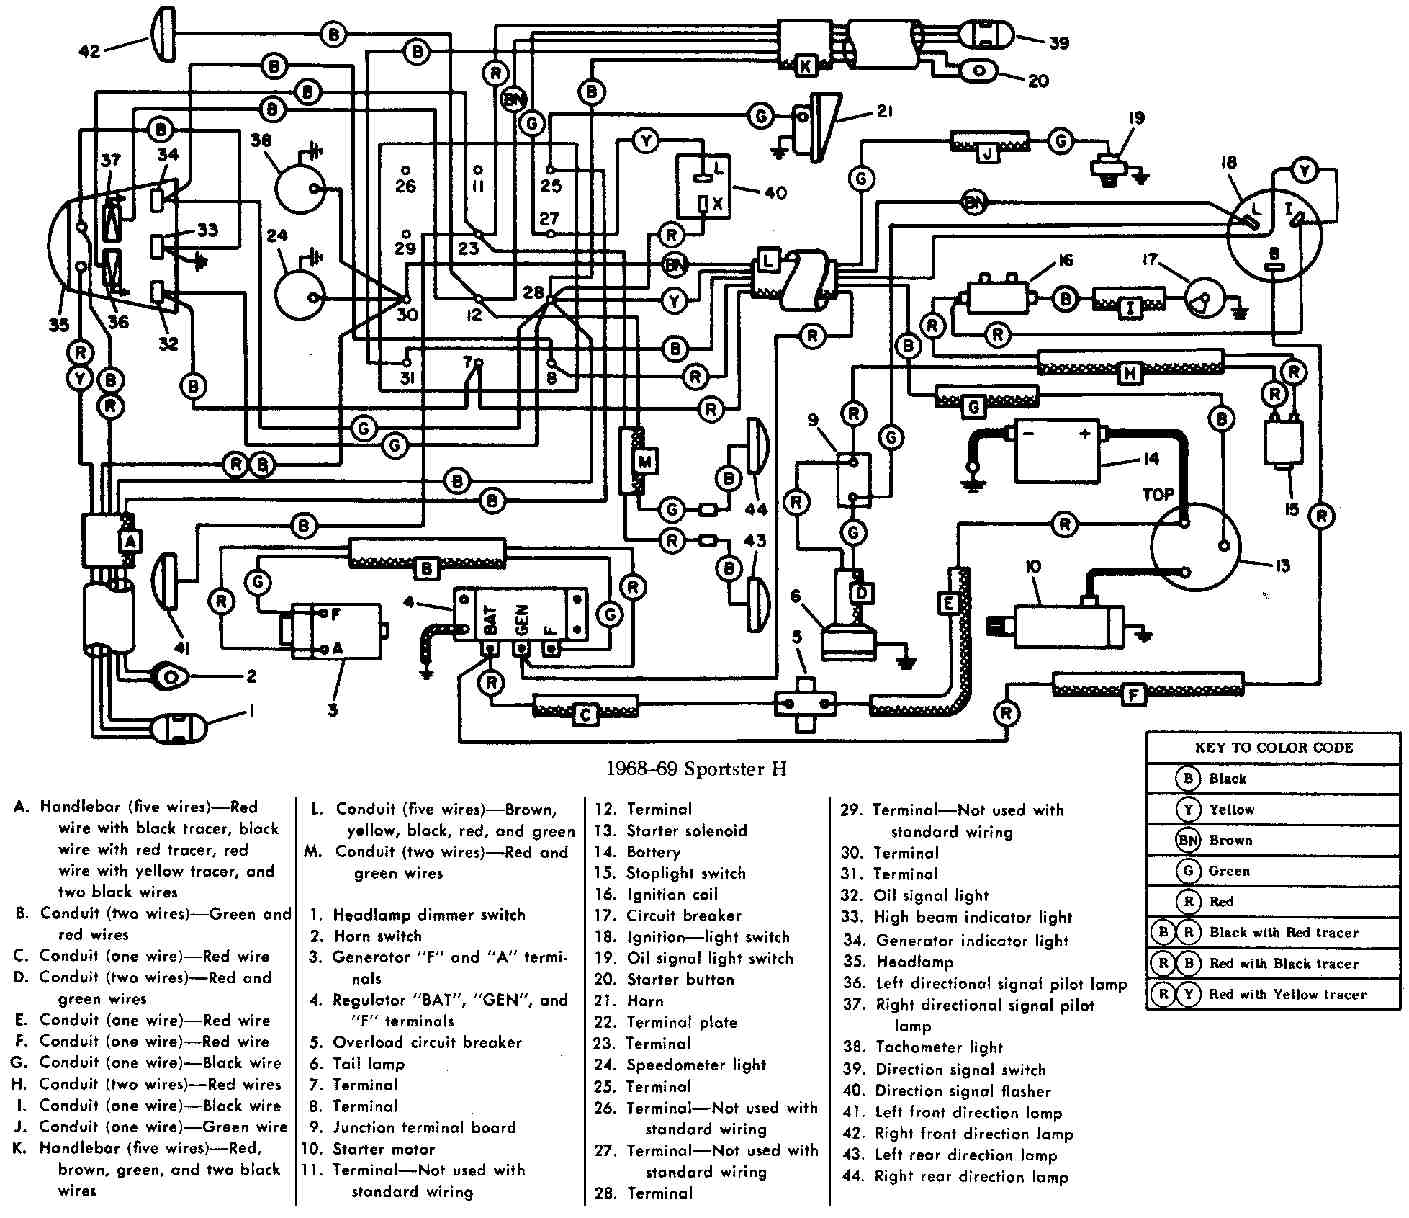 1998 Harley Dyna Wiring Diagram Starting Know About 1976 Davidson Sportster 1968 1969 Electrical Fatboy